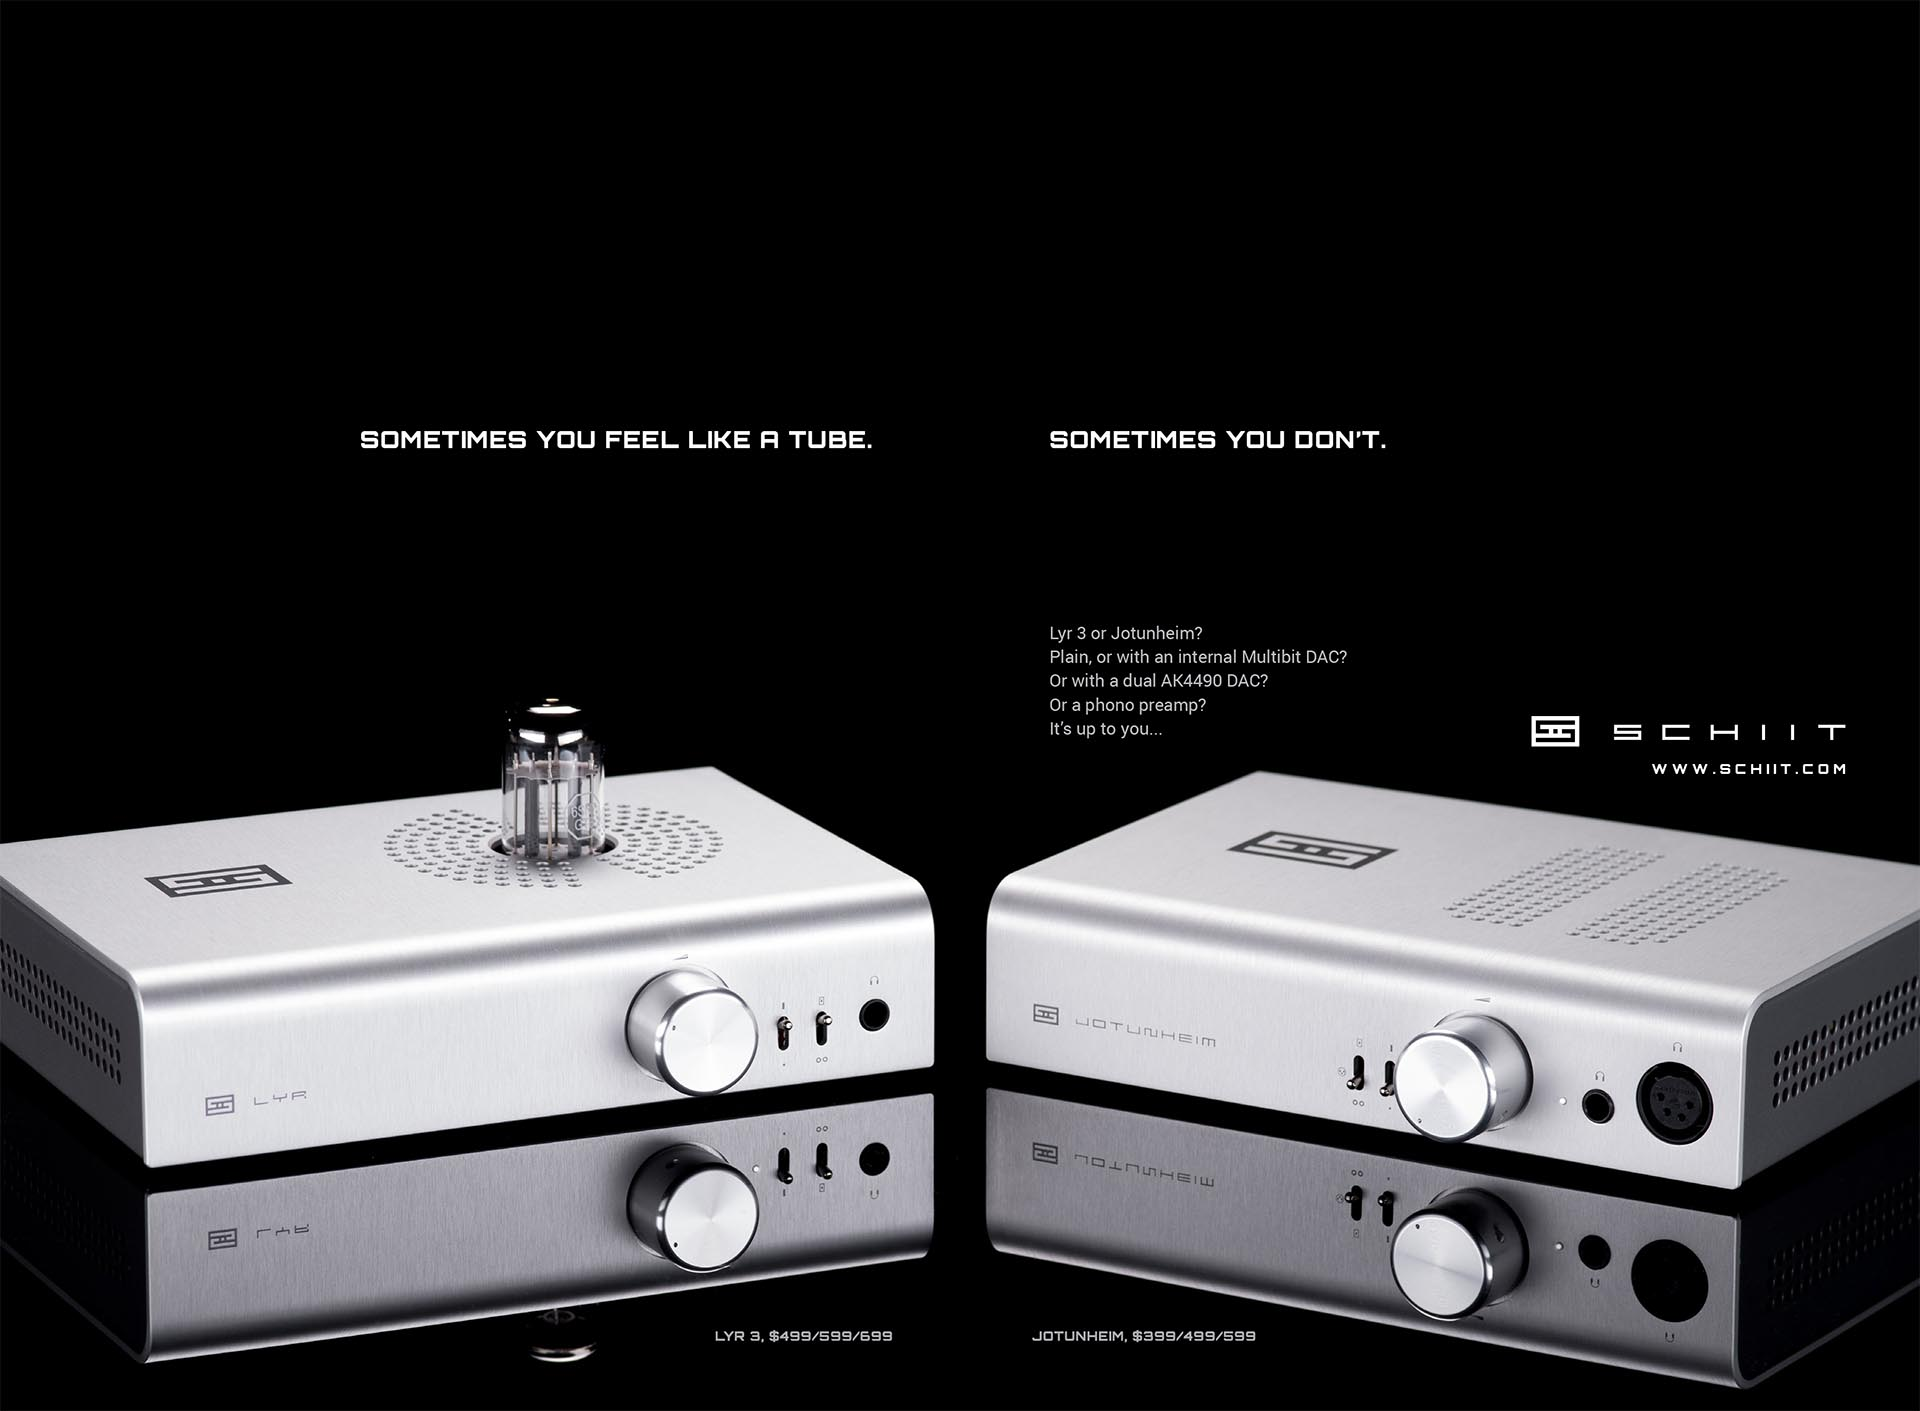 Schiit Happened The Story Of Worlds Most Improbable Start Up Shunt Voltage Regulator Circuit Http Wwwtubecadcom 2010 12 Mike And I Will Be On Video At 2pm Pst This Afternoon Talking About Lyr 3 Jotunheim Multibit Itll Our Facebook Page Later